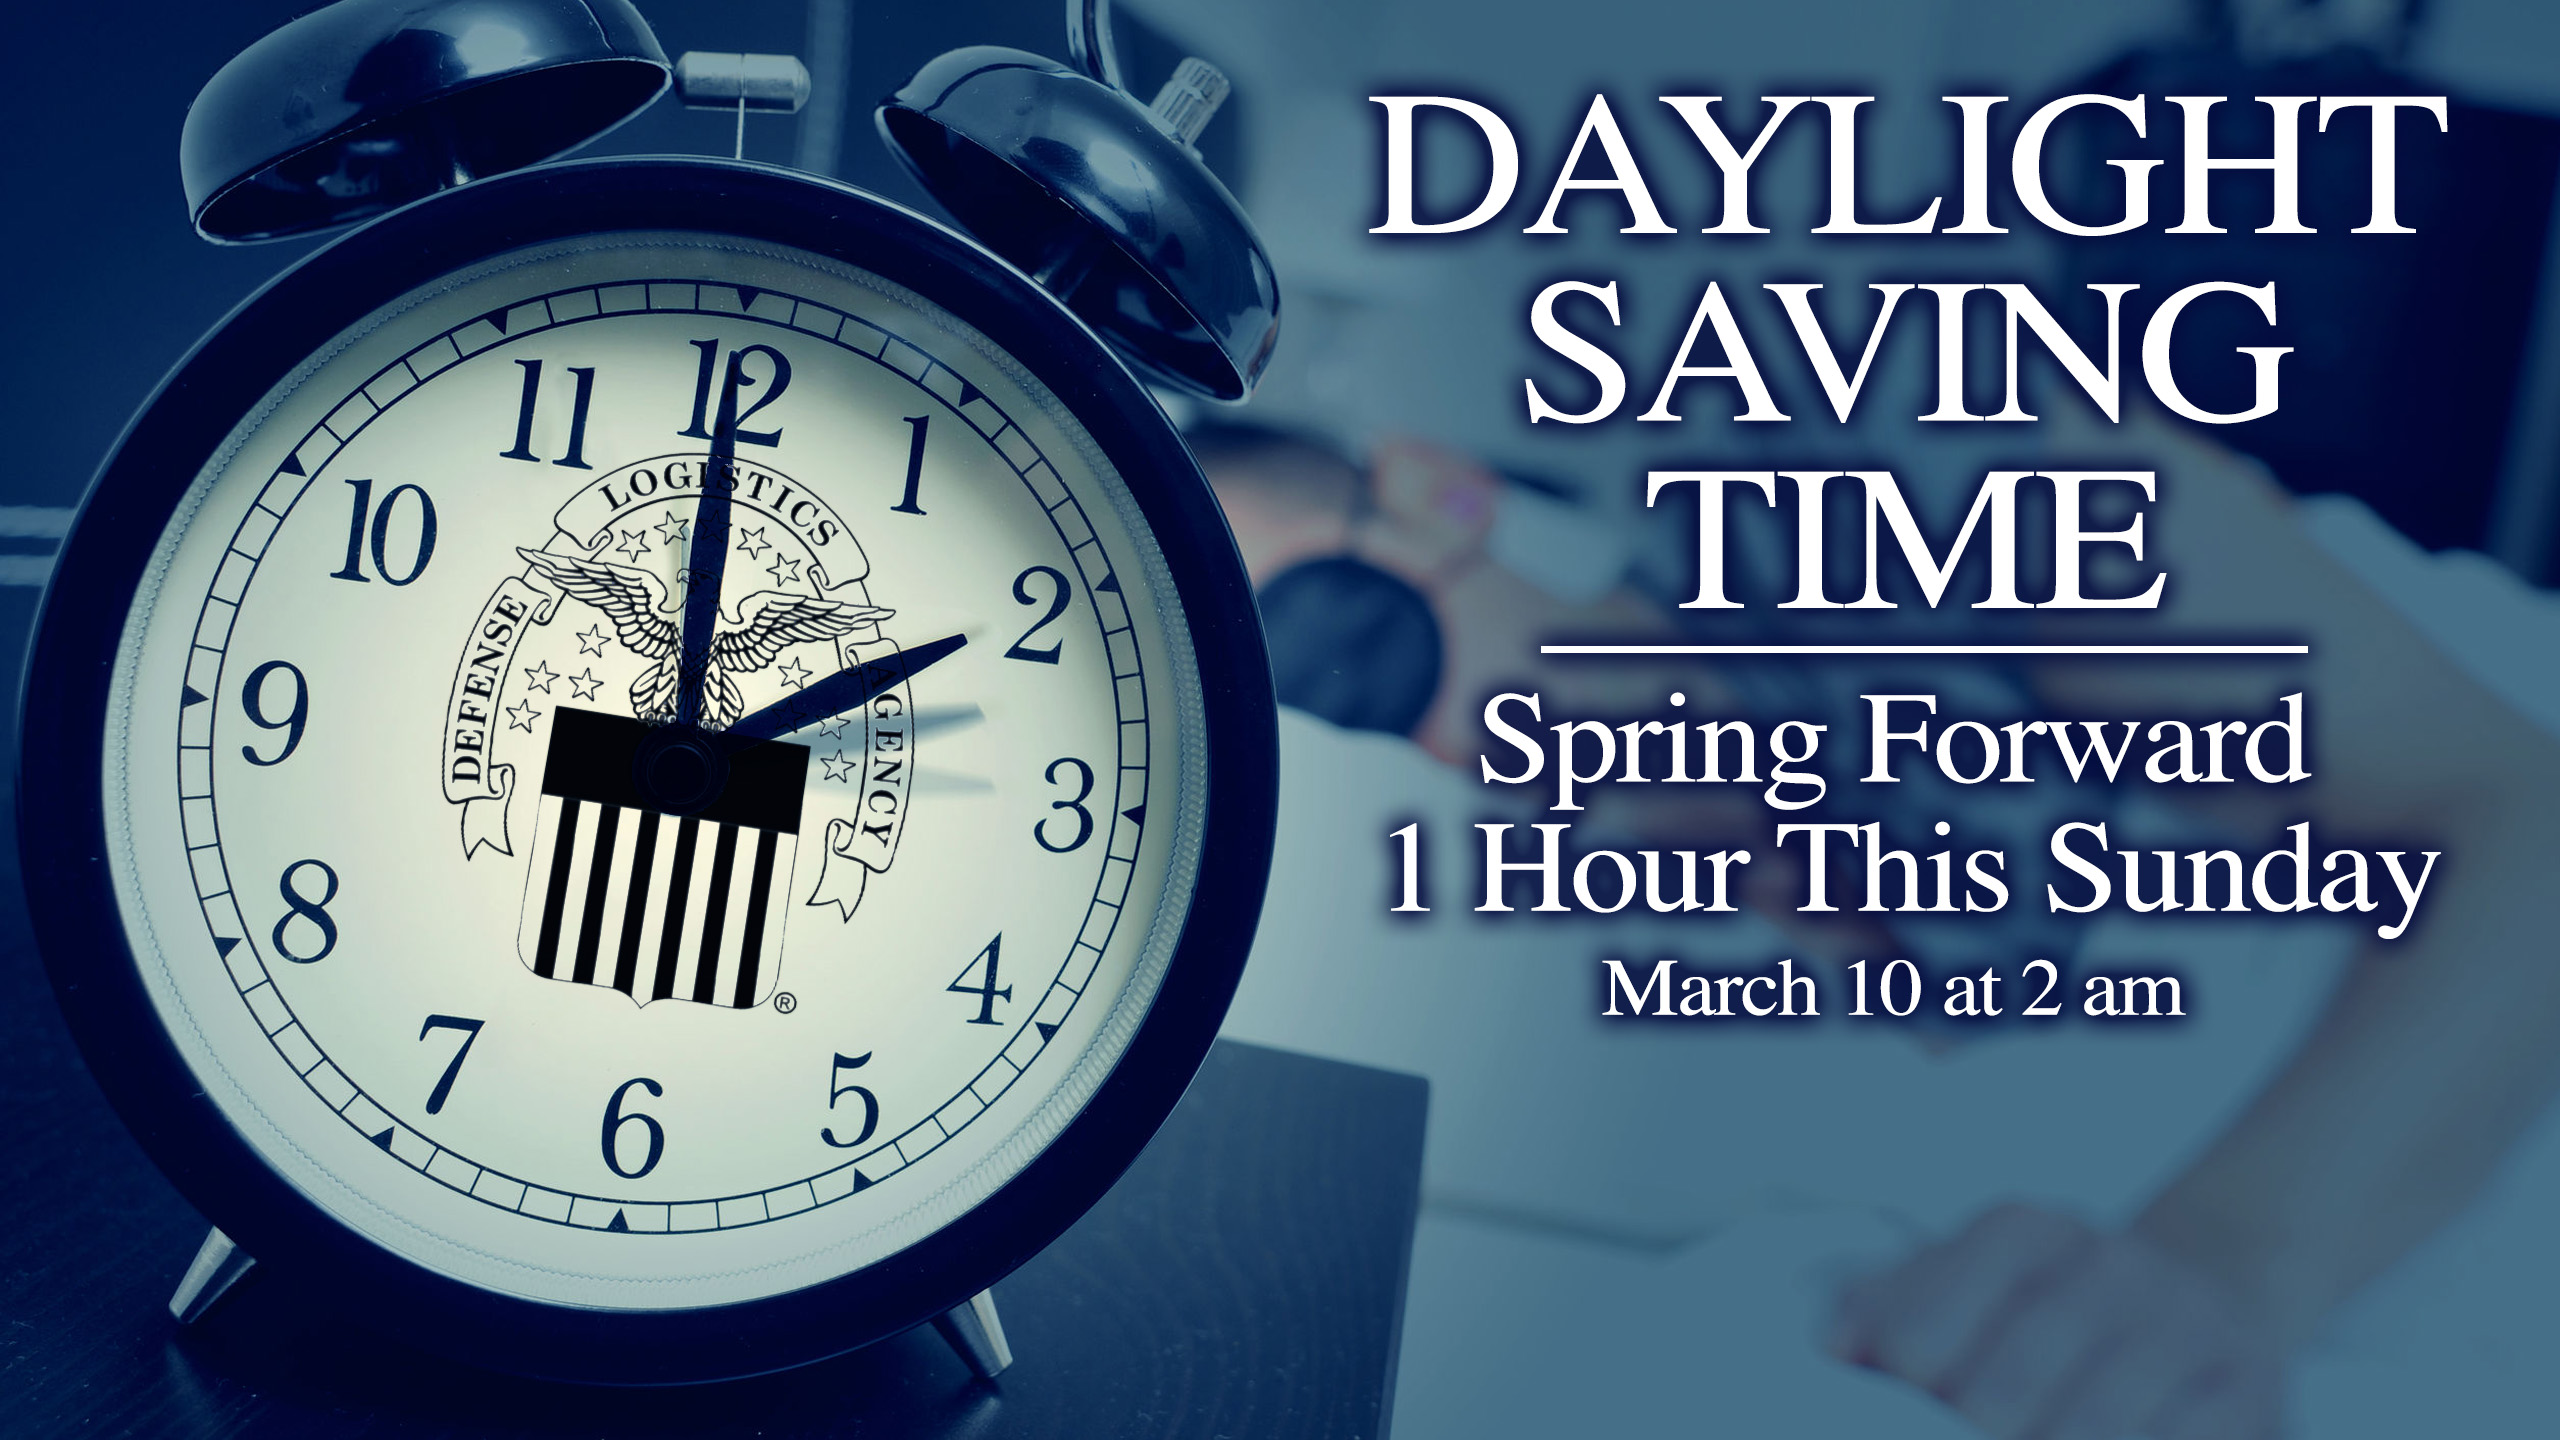 ae7705567c88a0 Daylight saving time  Spring forward this Sunday   Defense Logistics ...